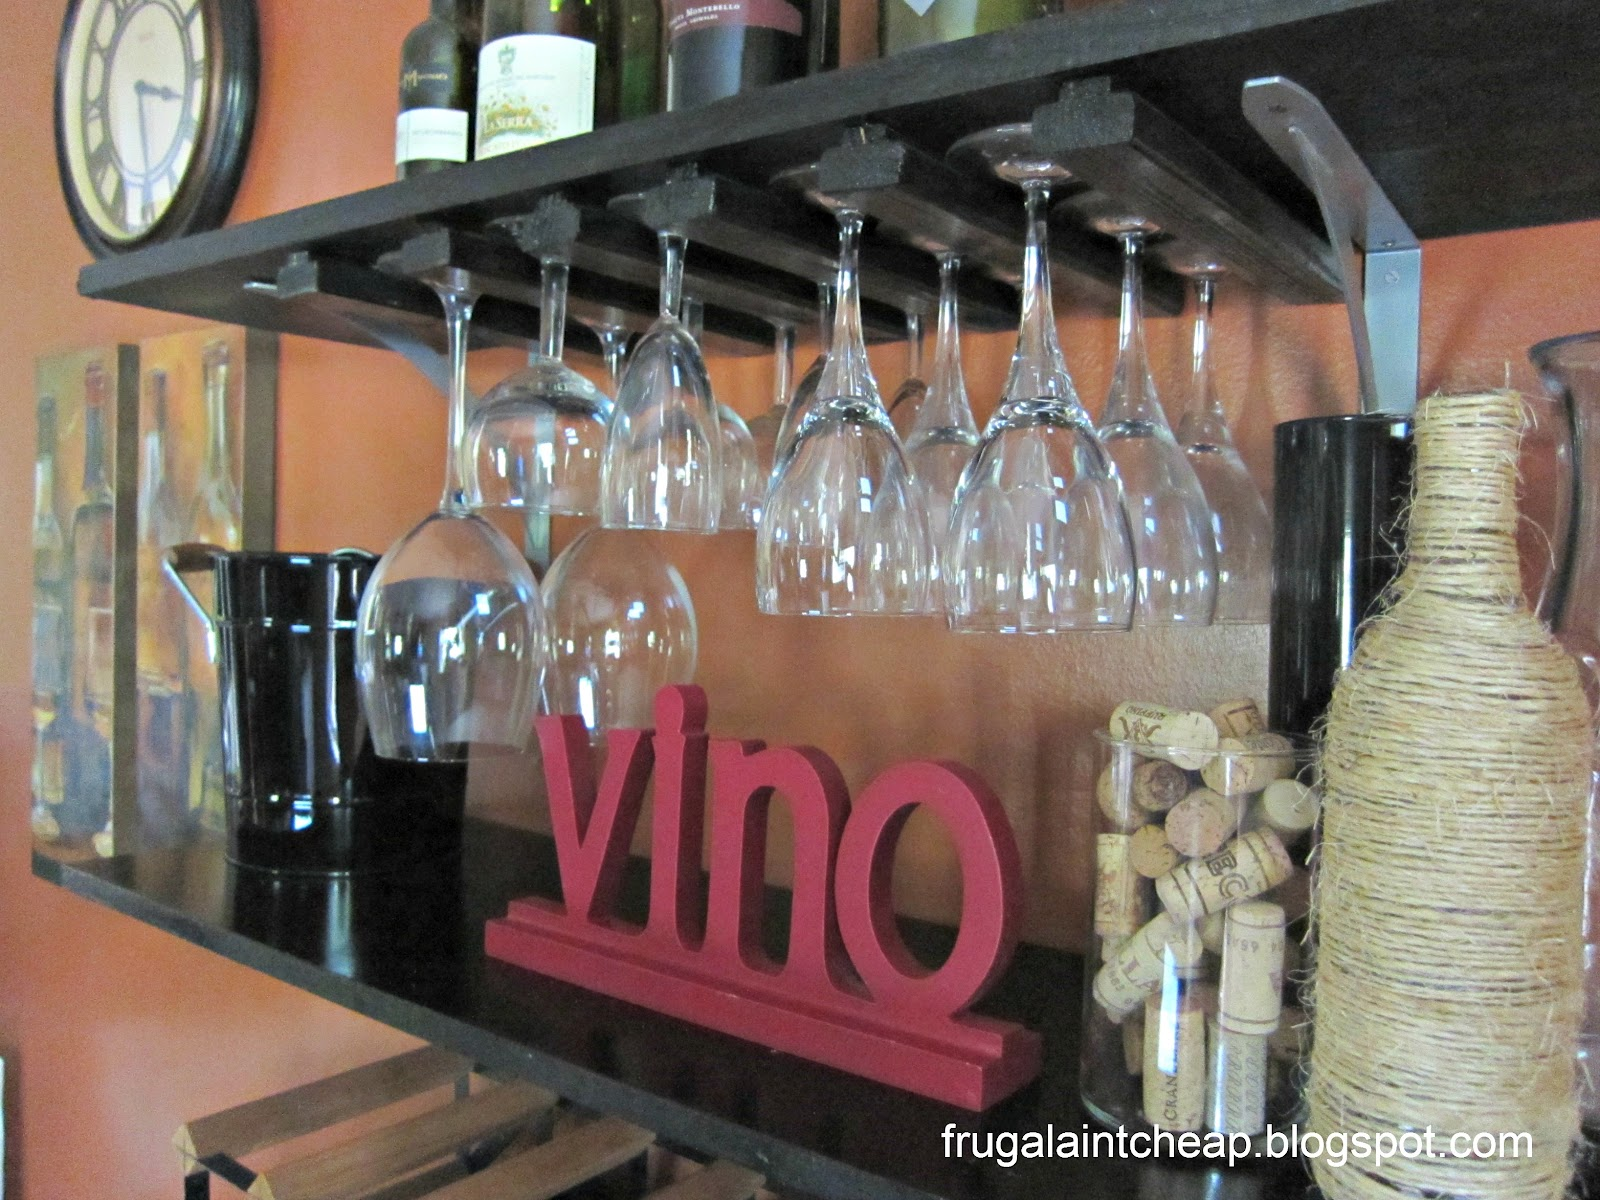 Diy Wine Storage Rack Frugal Ain 39t Cheap Diy Wine Glass Rack